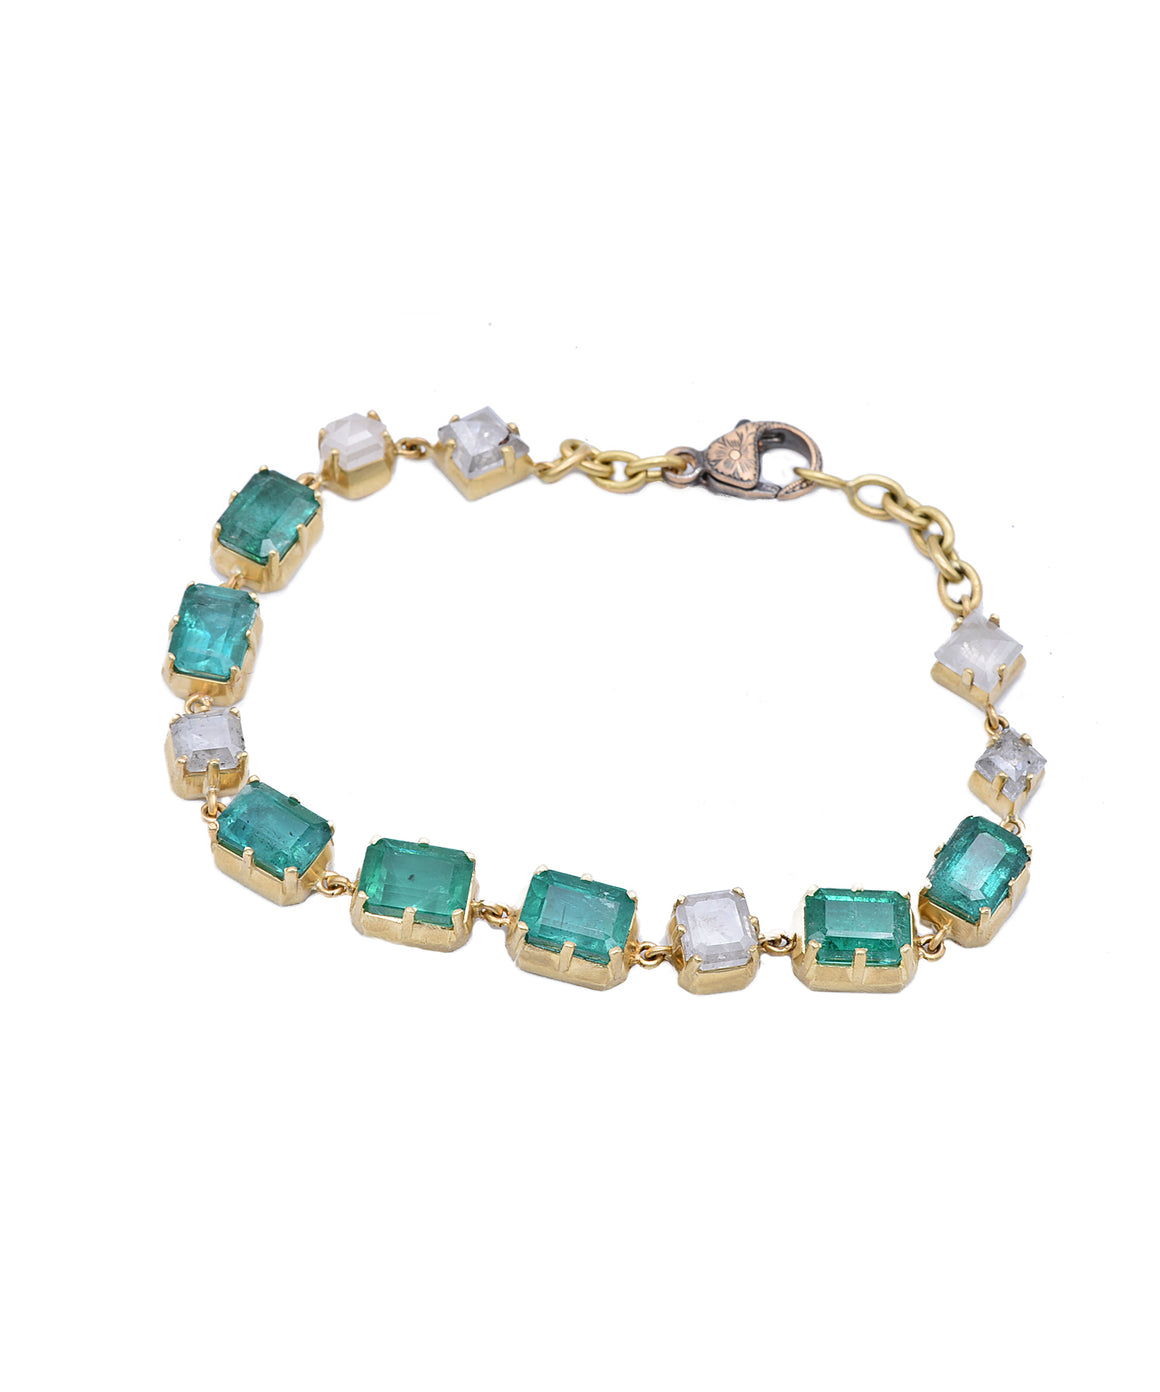 "Here's a modern way to enjoy emeralds. Over 12 carats of emeralds are set along the bracelet with rough diamonds totaling 5.05 carat. The 18k yellow gold bracelet is 7.25"" long."